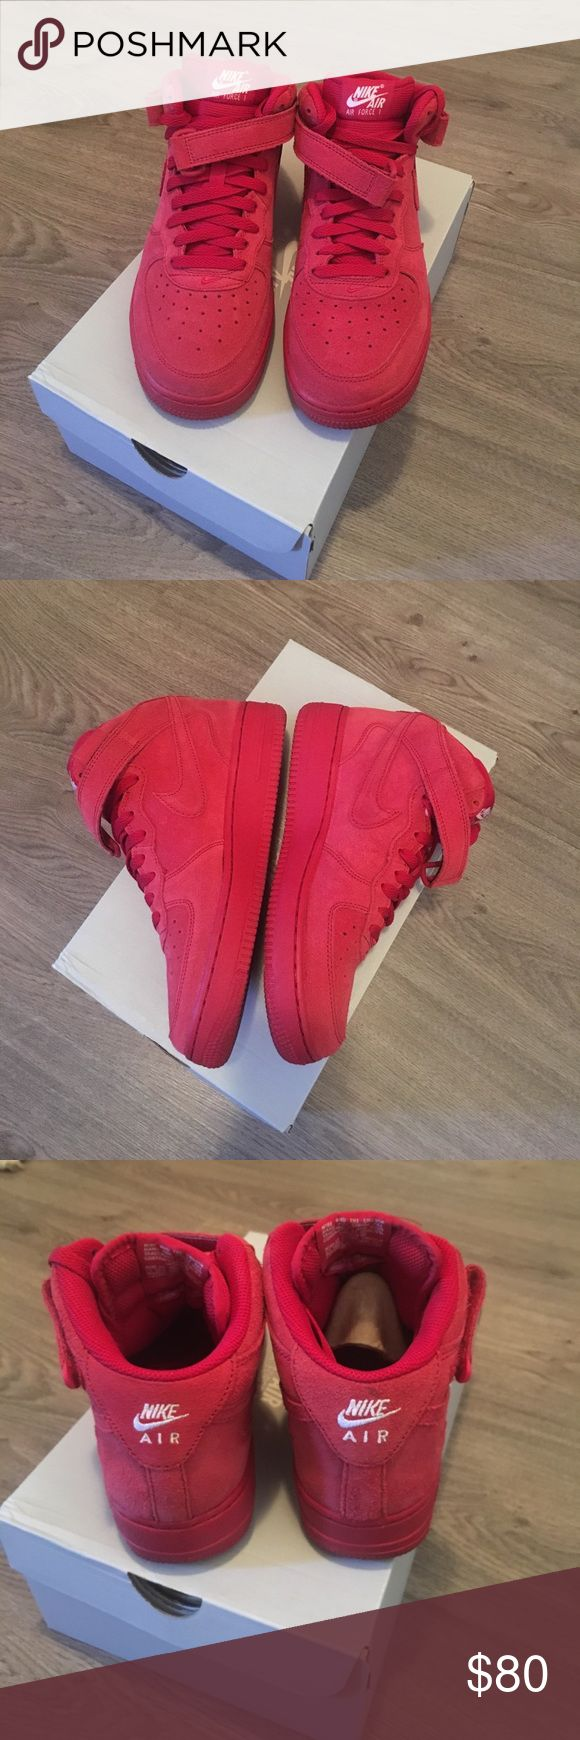 Nike Air Force 1s Nike Air Force 1s. Mid all red suede. Great condition & only worn twice! Size: 6y, women's 7.5 *can negotiate offers* shoe does fit true to size Nike Shoes Sneakers